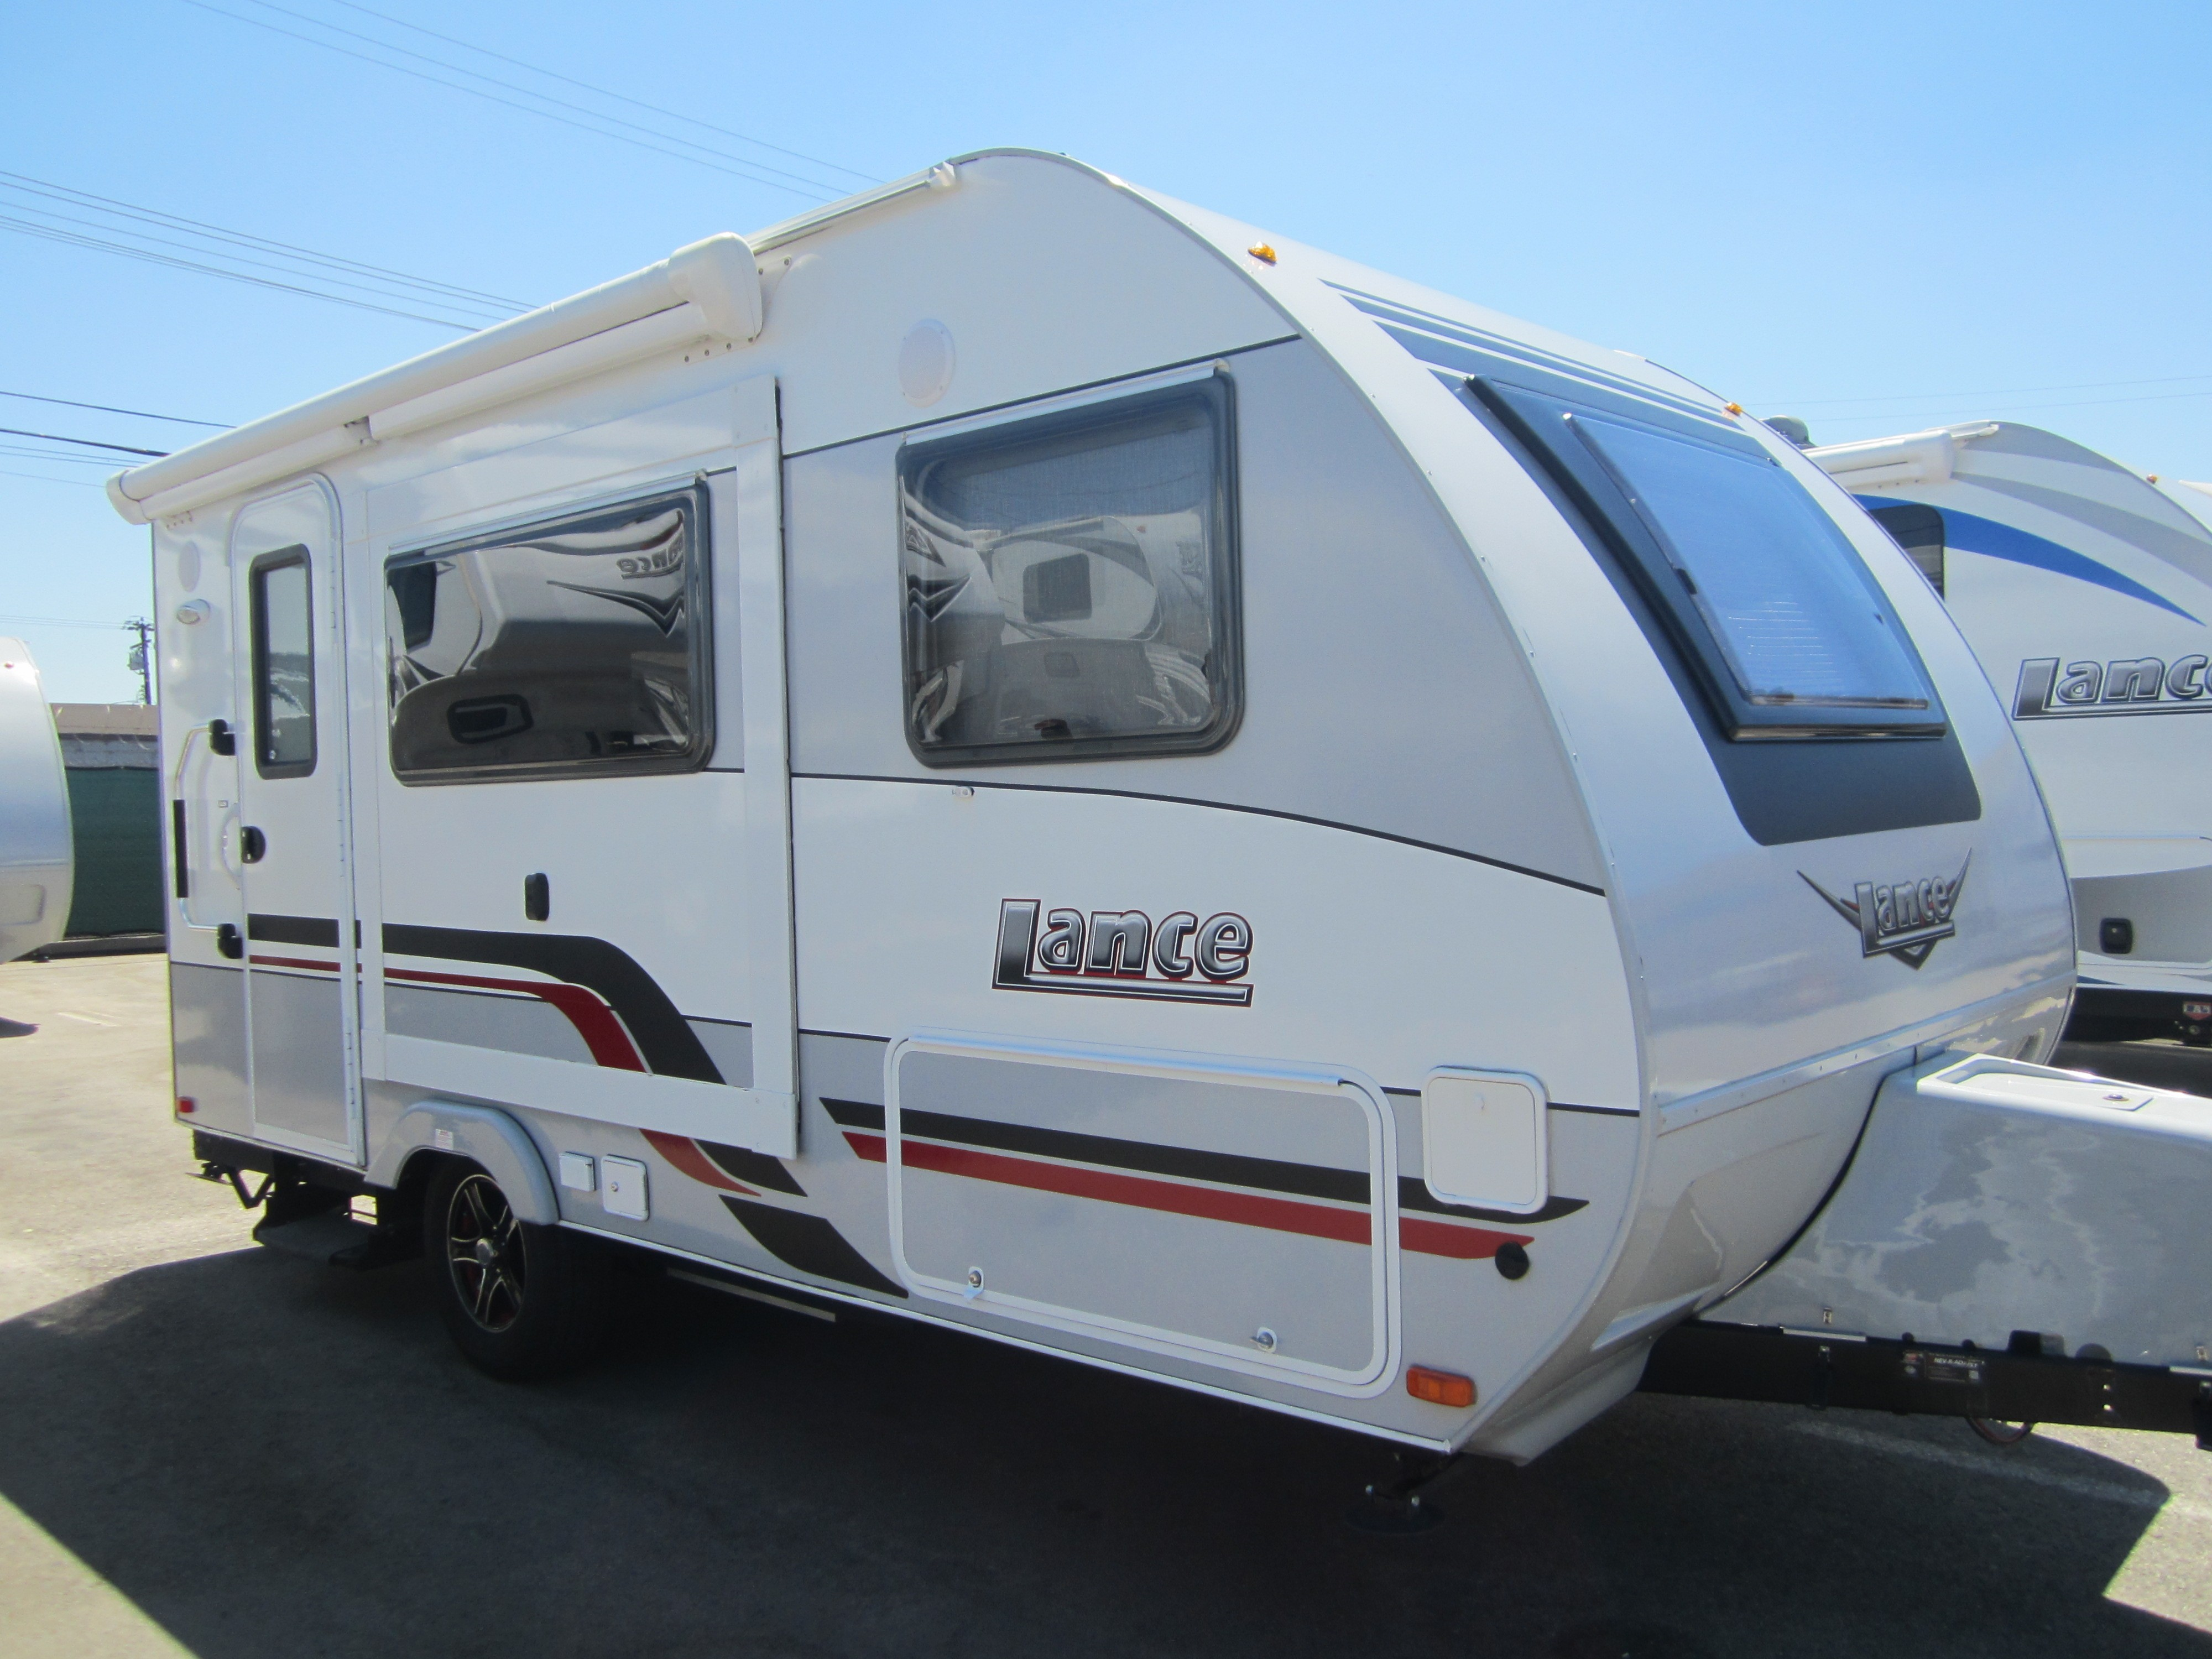 2018 Lance 1475 For Sale in Ontario, CA - RV Trader